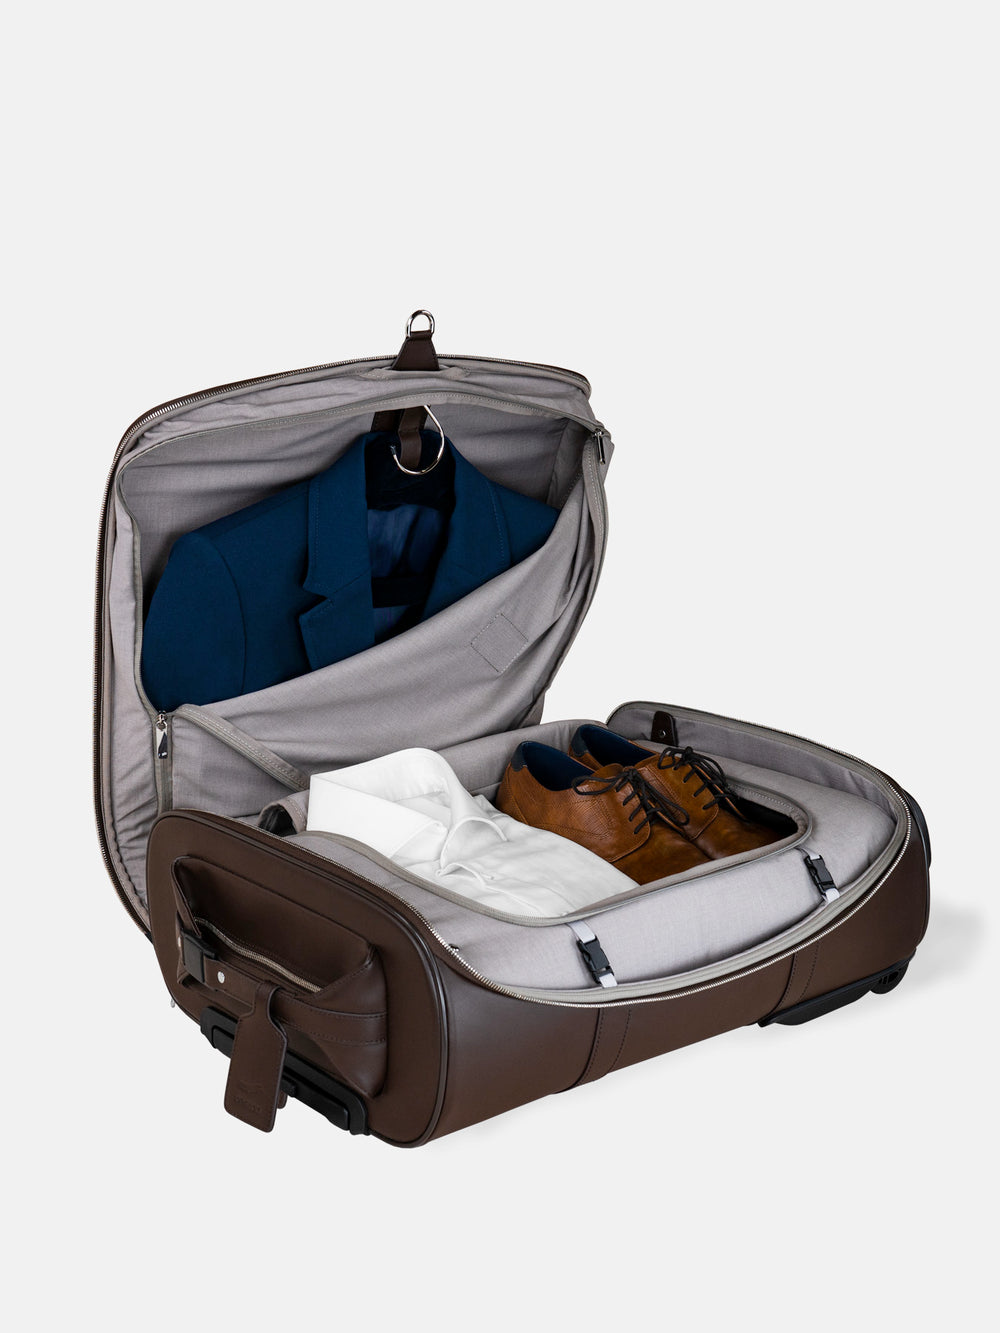 f38 carry on luggage with suit compartment in brown leather braunes leder